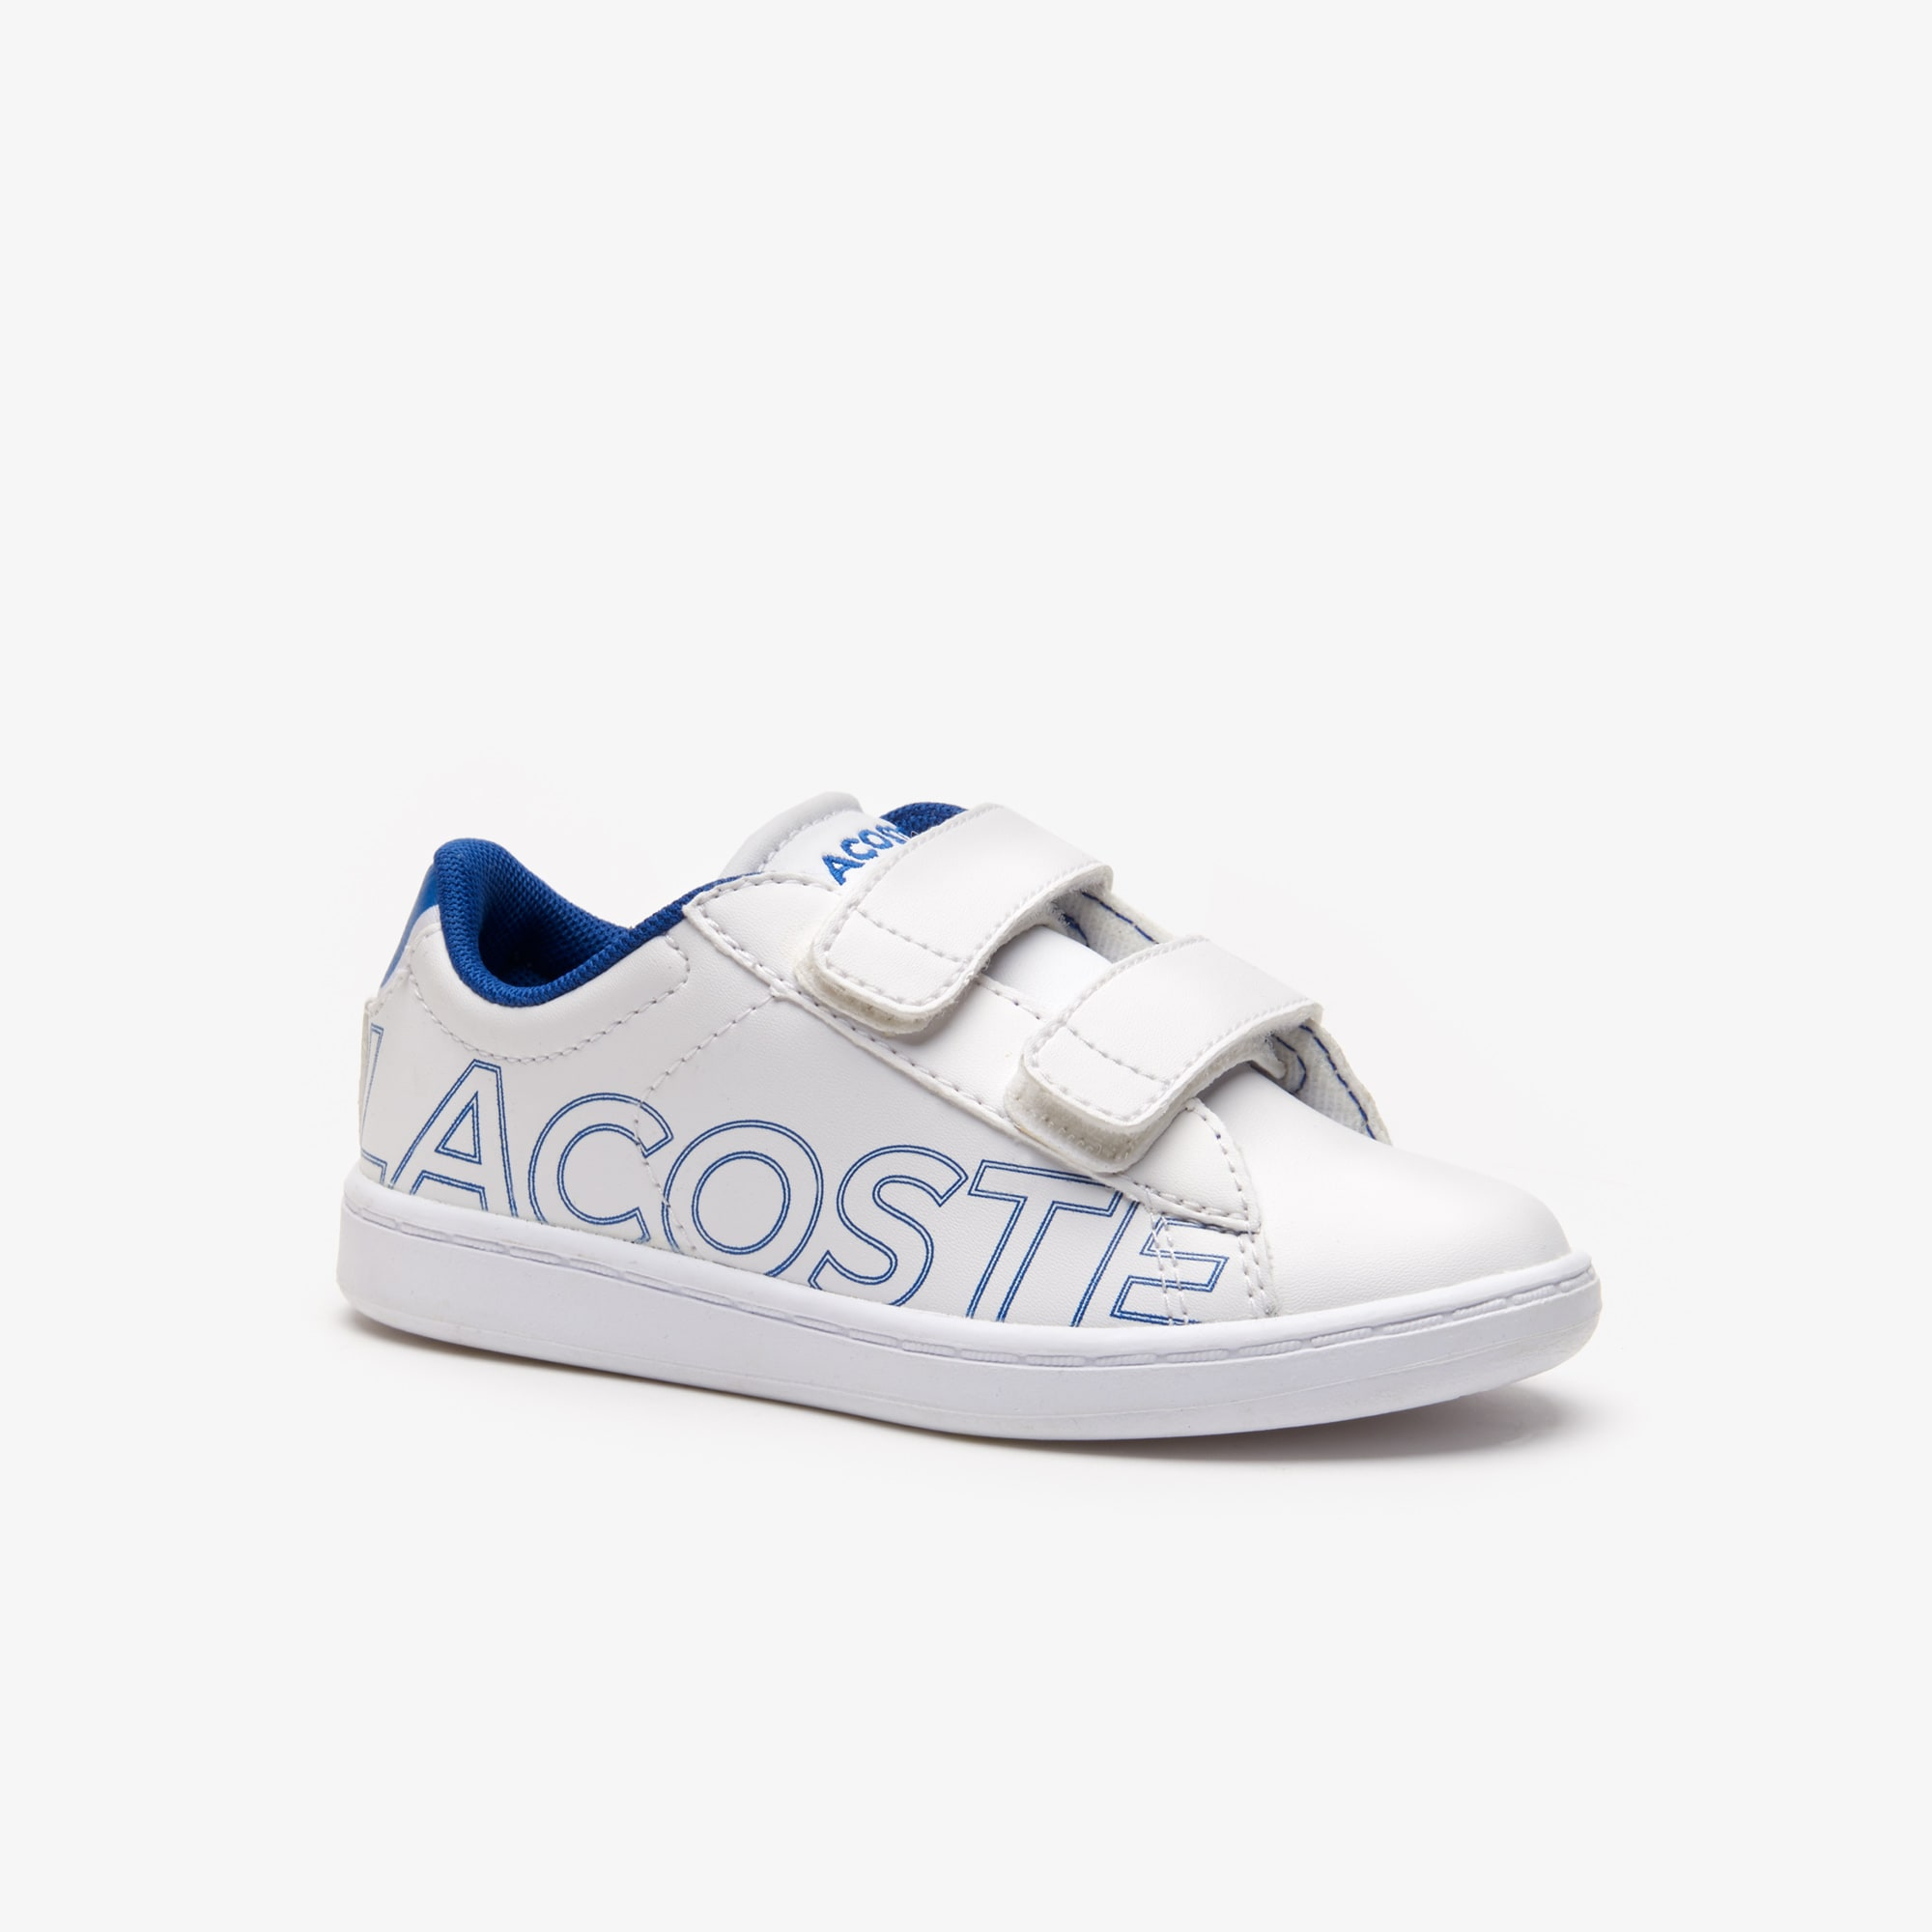 8bffcf5acc24e Chaussures Fille